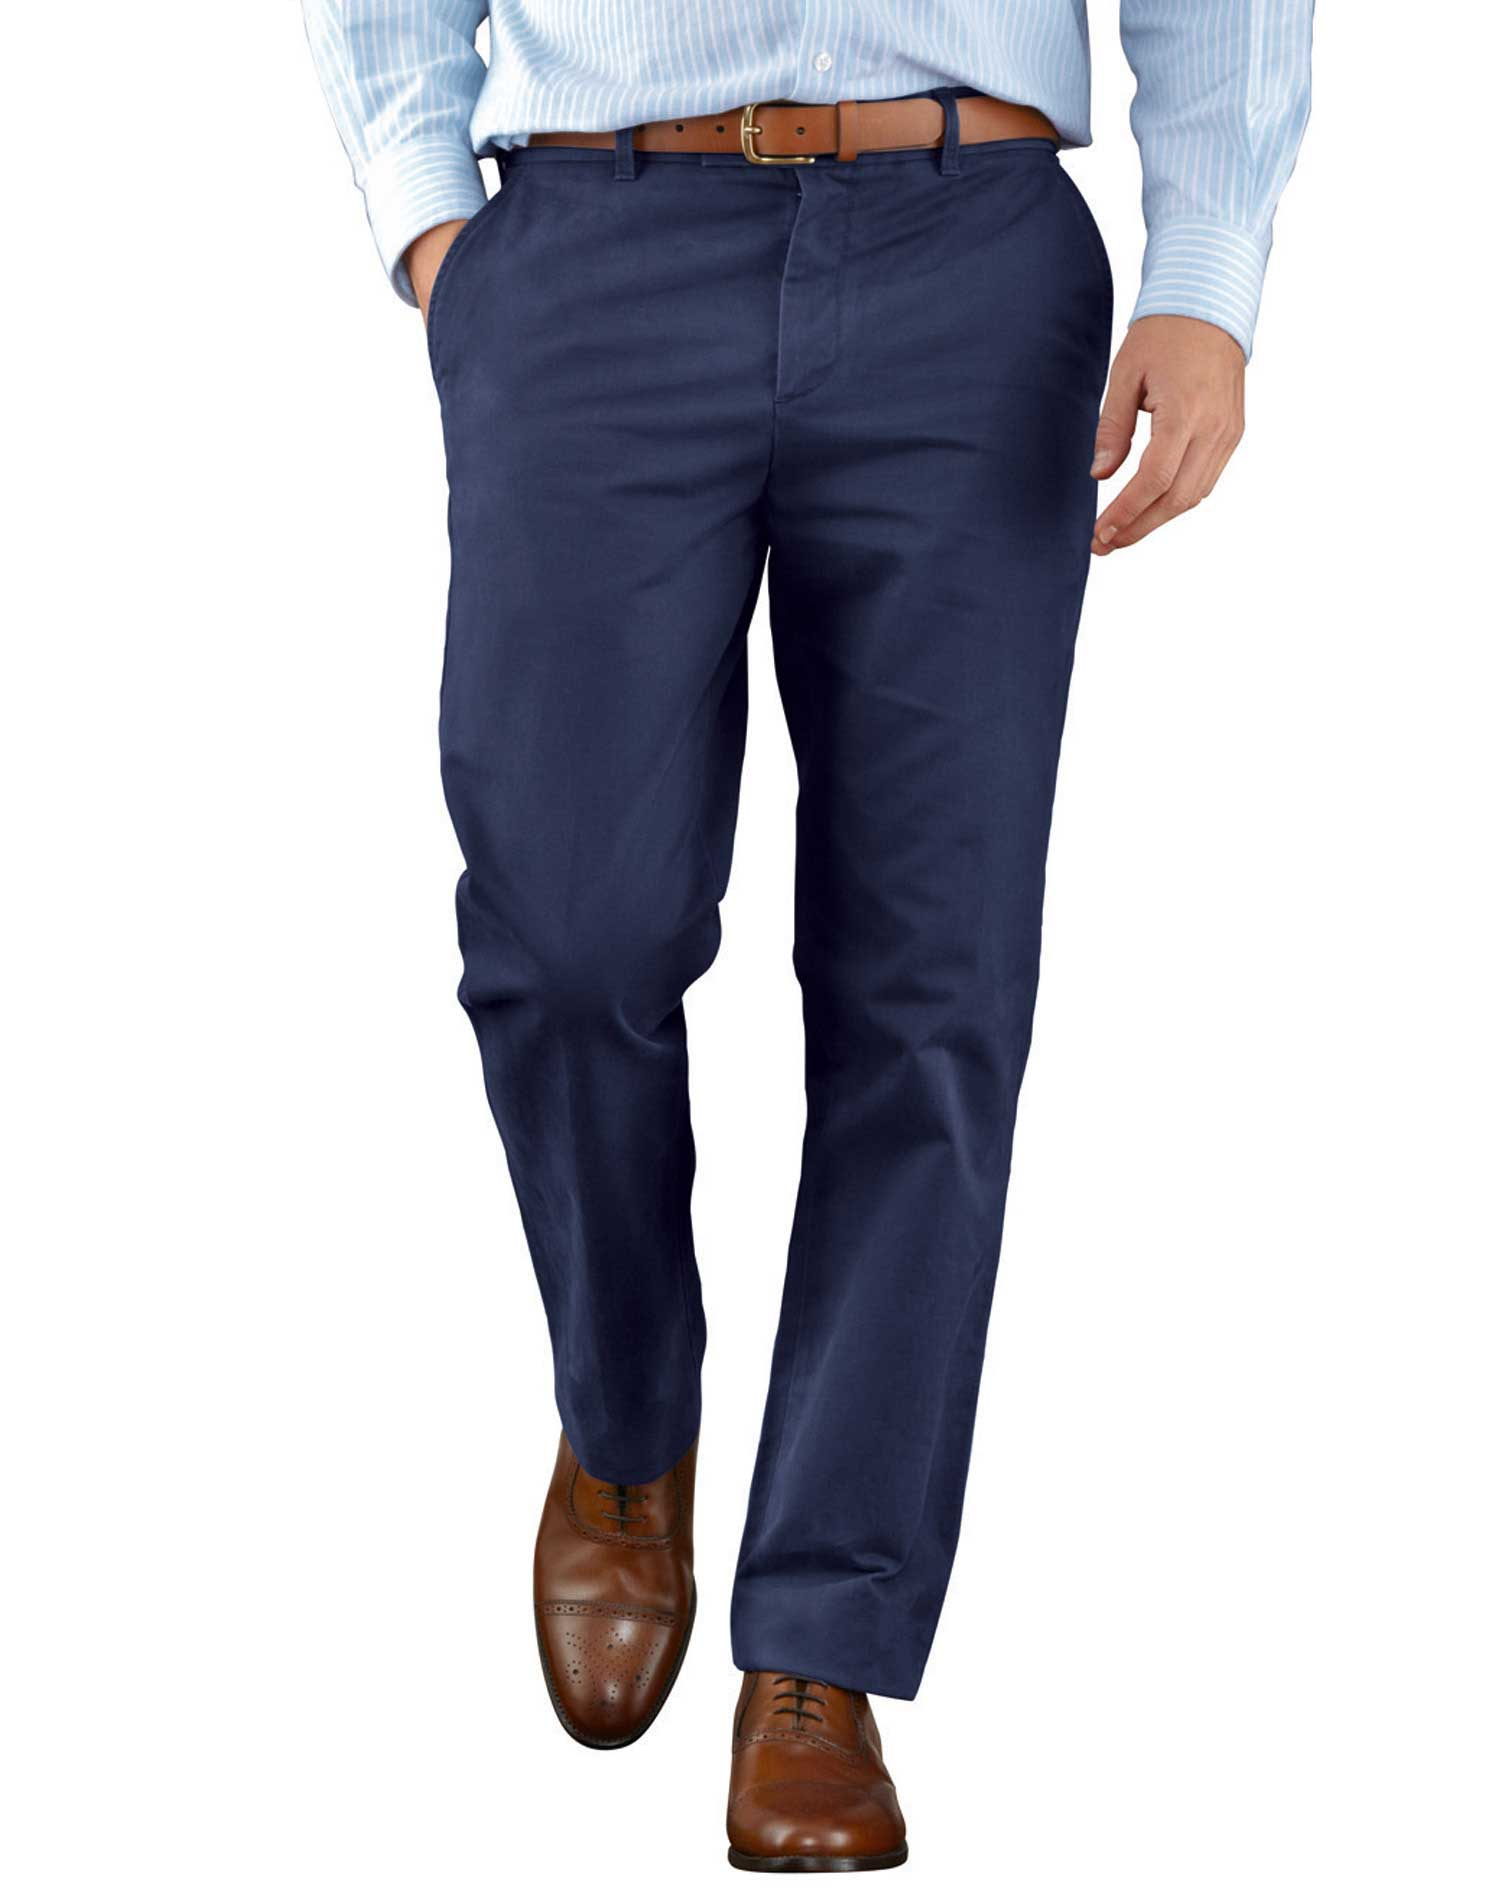 Blue Slim Fit Flat Front Weekend Cotton Chino Trousers Size W30 L30 by Charles Tyrwhitt